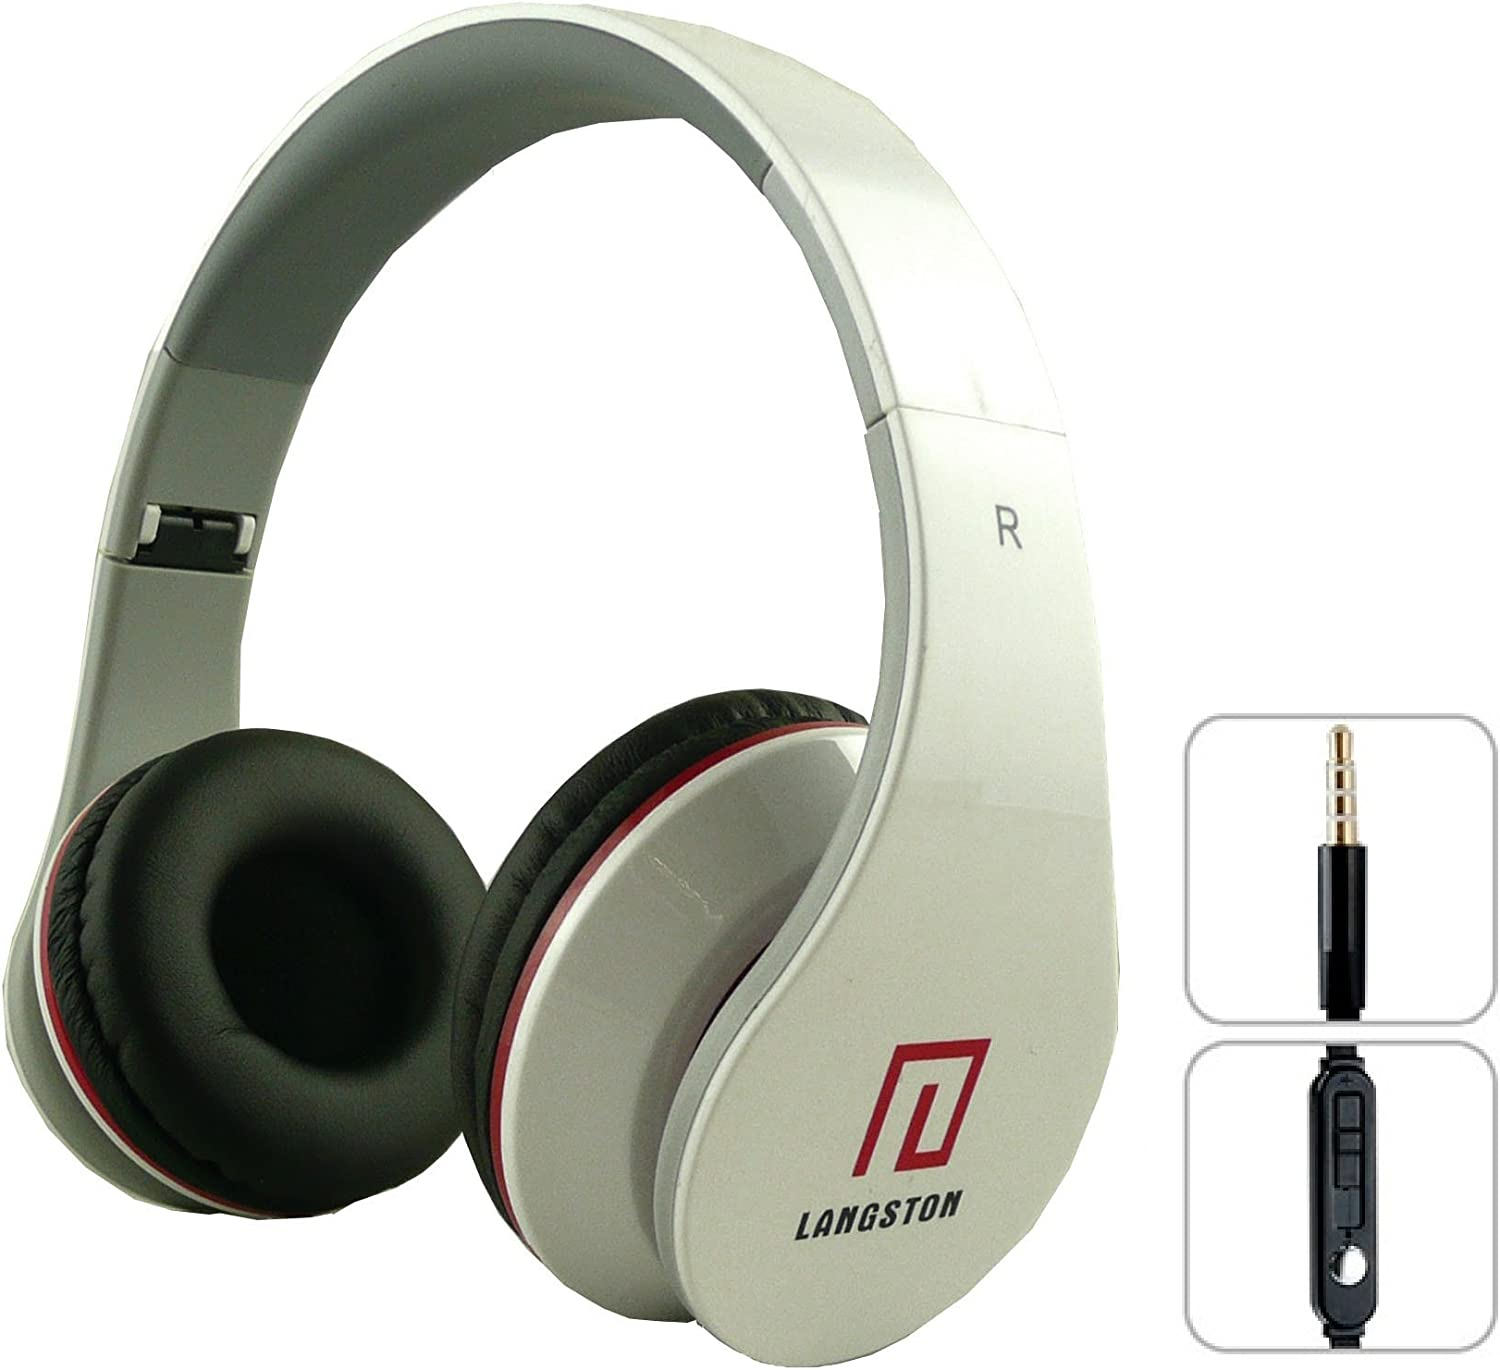 Langston ® Super Bass High Definition Sound Over Ear Foldable Headphones ( iM-12v ) in White With Microphone & Remote Suitable For BLU Vivo 5R White Super Bass iM-12v